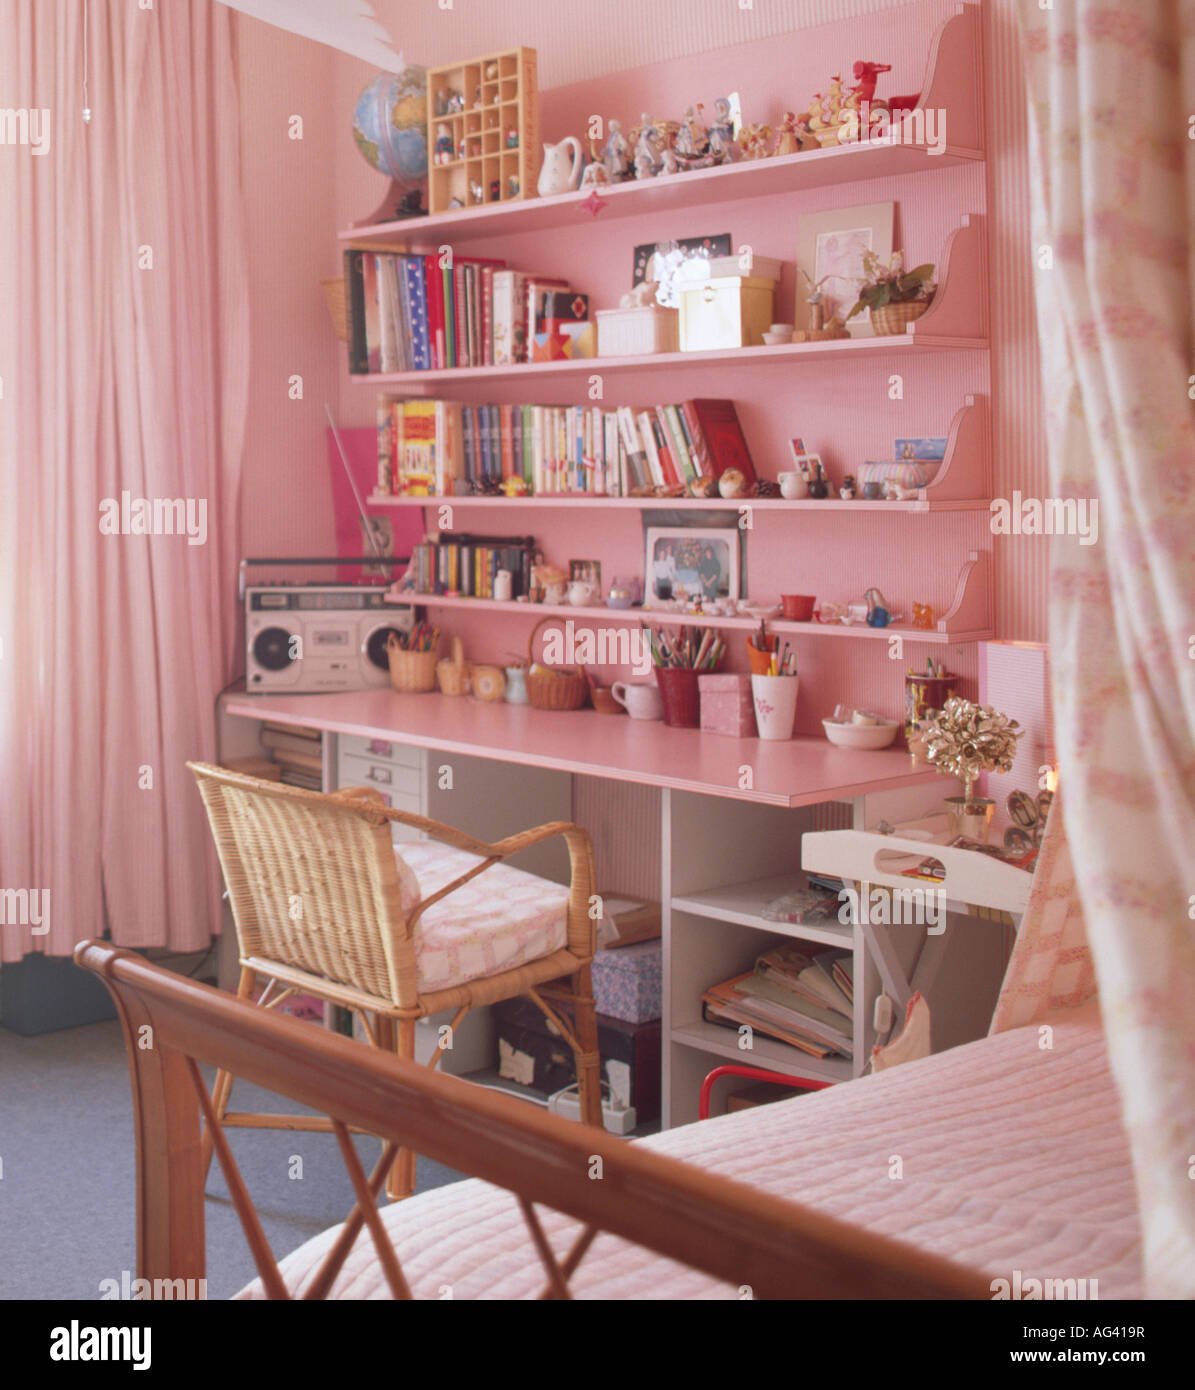 Admirable Pink Shelves Above Built In Desk In Teenage Girls Pink Download Free Architecture Designs Intelgarnamadebymaigaardcom